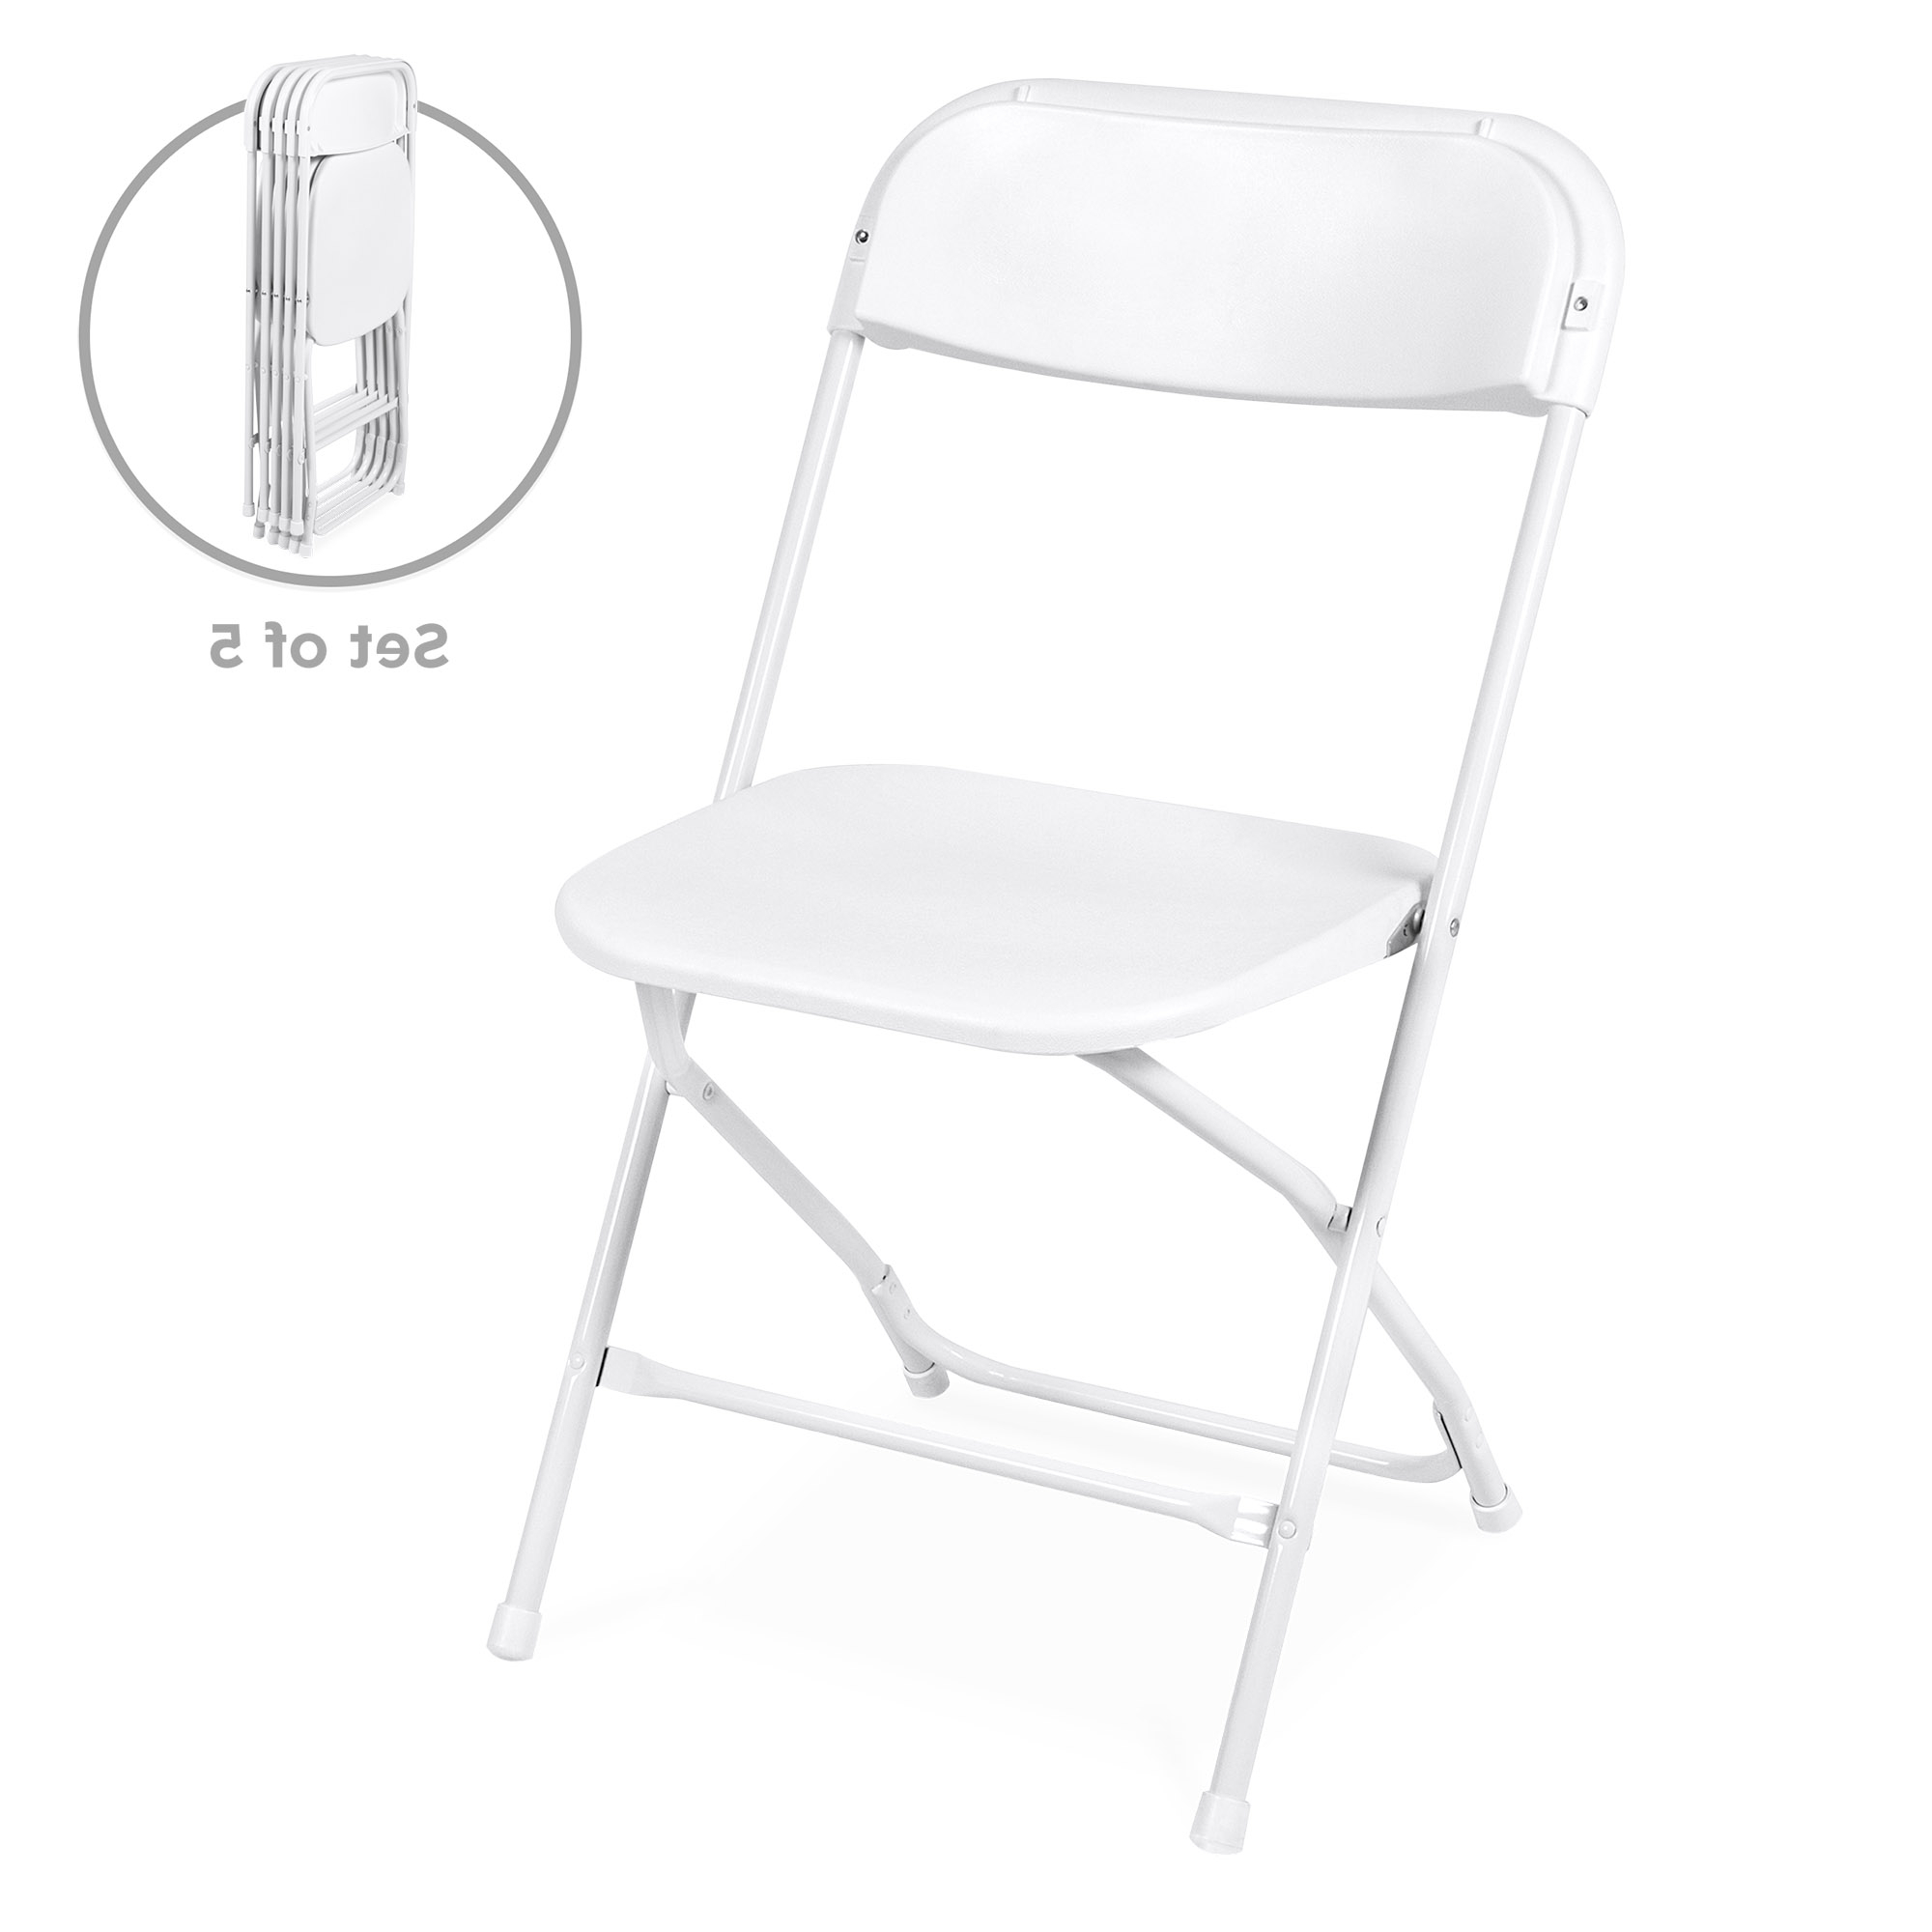 Best Choice Products Set Of 5 Indoor Outdoor Portable Stackable Lightweight Plastic Folding Chairs For Events, Parties – White Throughout 2020 Iron Frame Locking Portable Folding Chairs (Gallery 3 of 25)